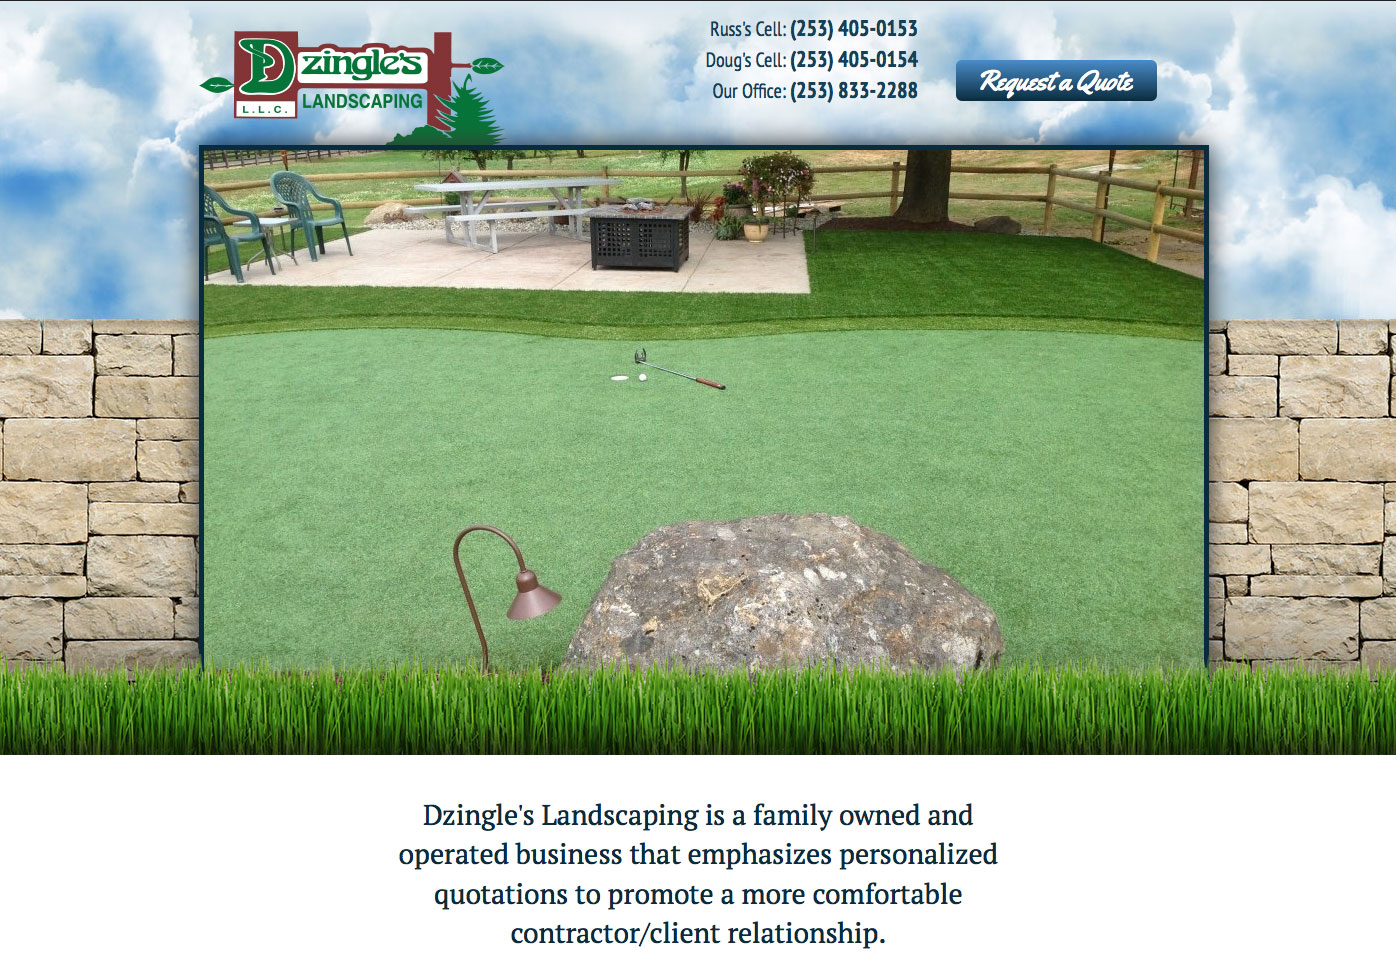 Dzingle's Landscaping LLC | Aquatic Gardens, Synthetic Turf, Flagstone,  Hardscapes and More — Serving the Auburn and Seattle Washington area - Dzingle's Landscaping LLC Aquatic Gardens, Synthetic Turf